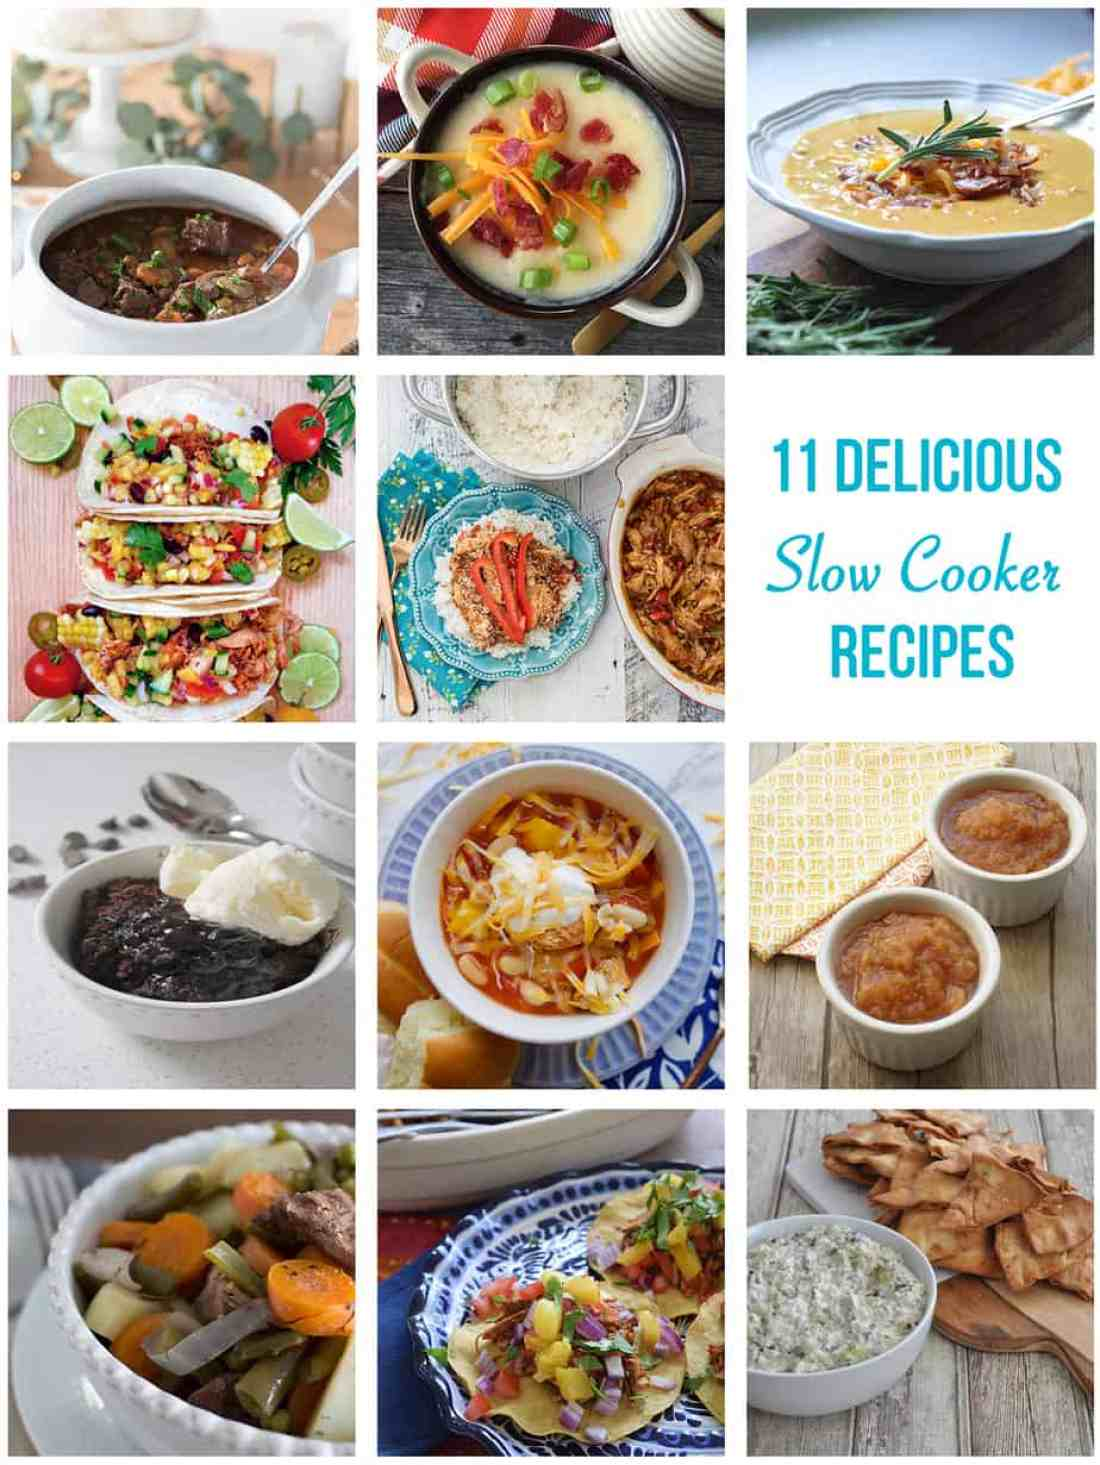 11 Delicious Slow Cooker Recipes